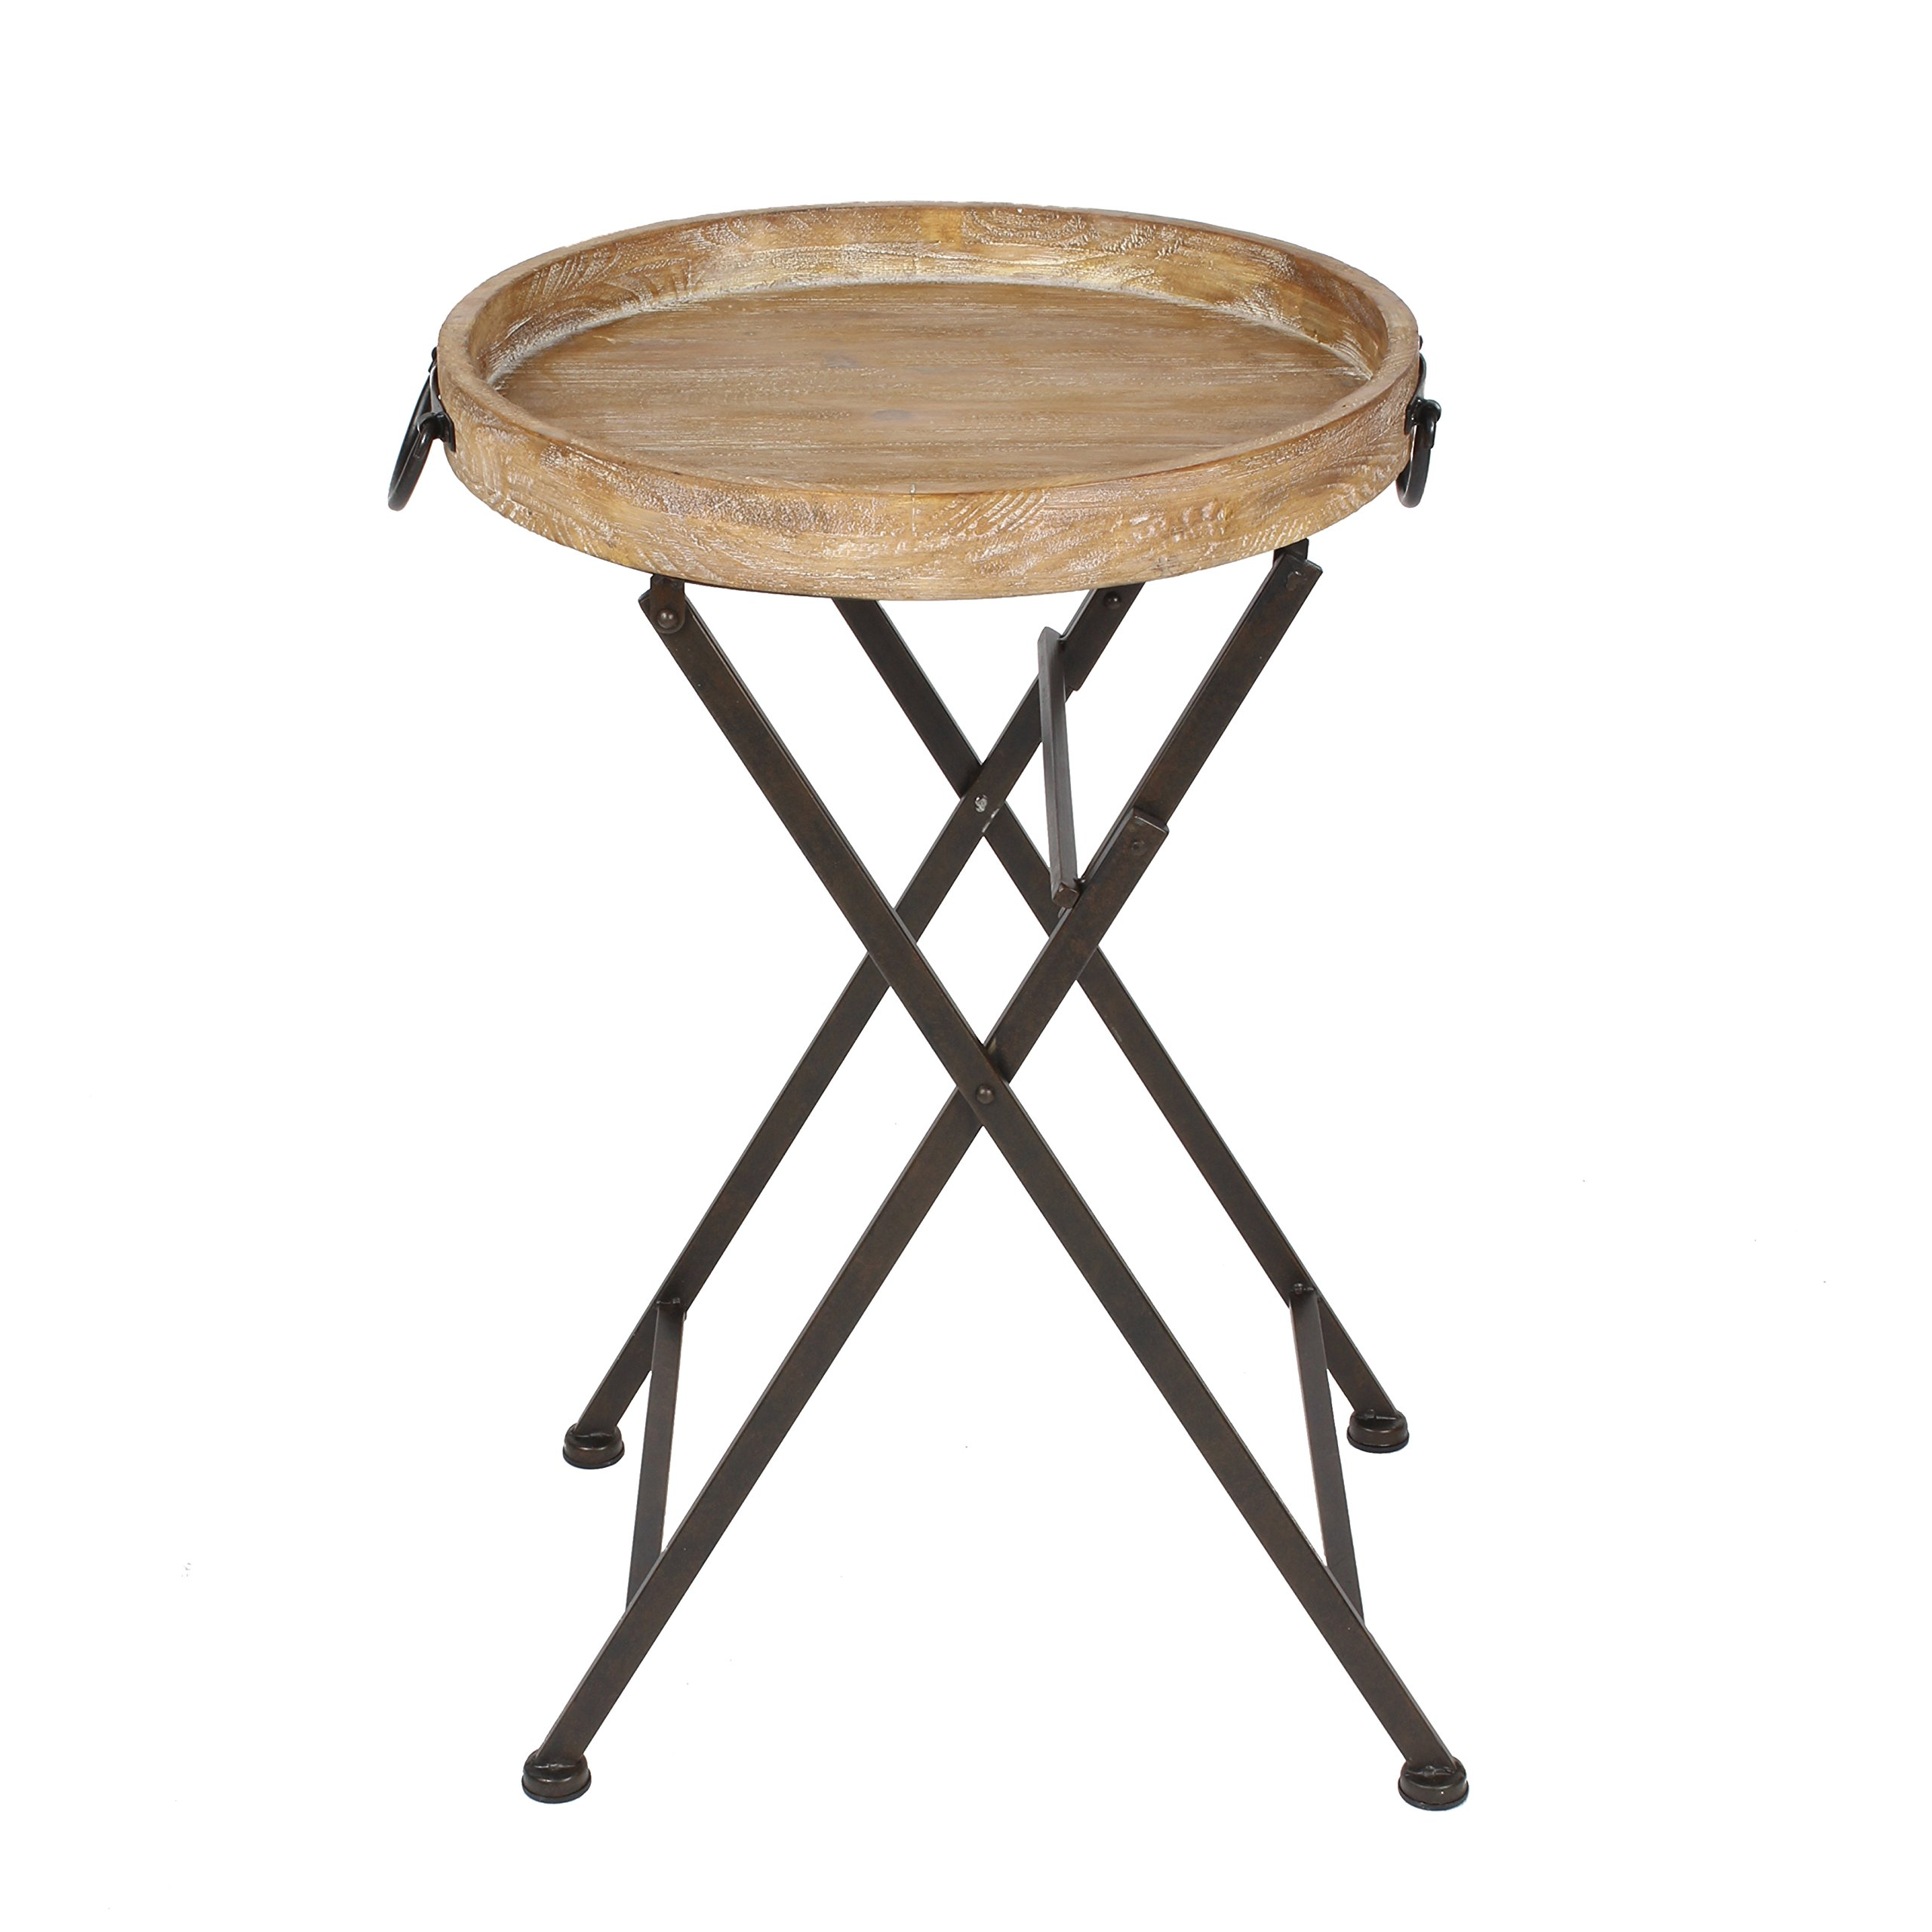 Kate and Laurel Marmora Round Metal and Wood Tray Table, 28''